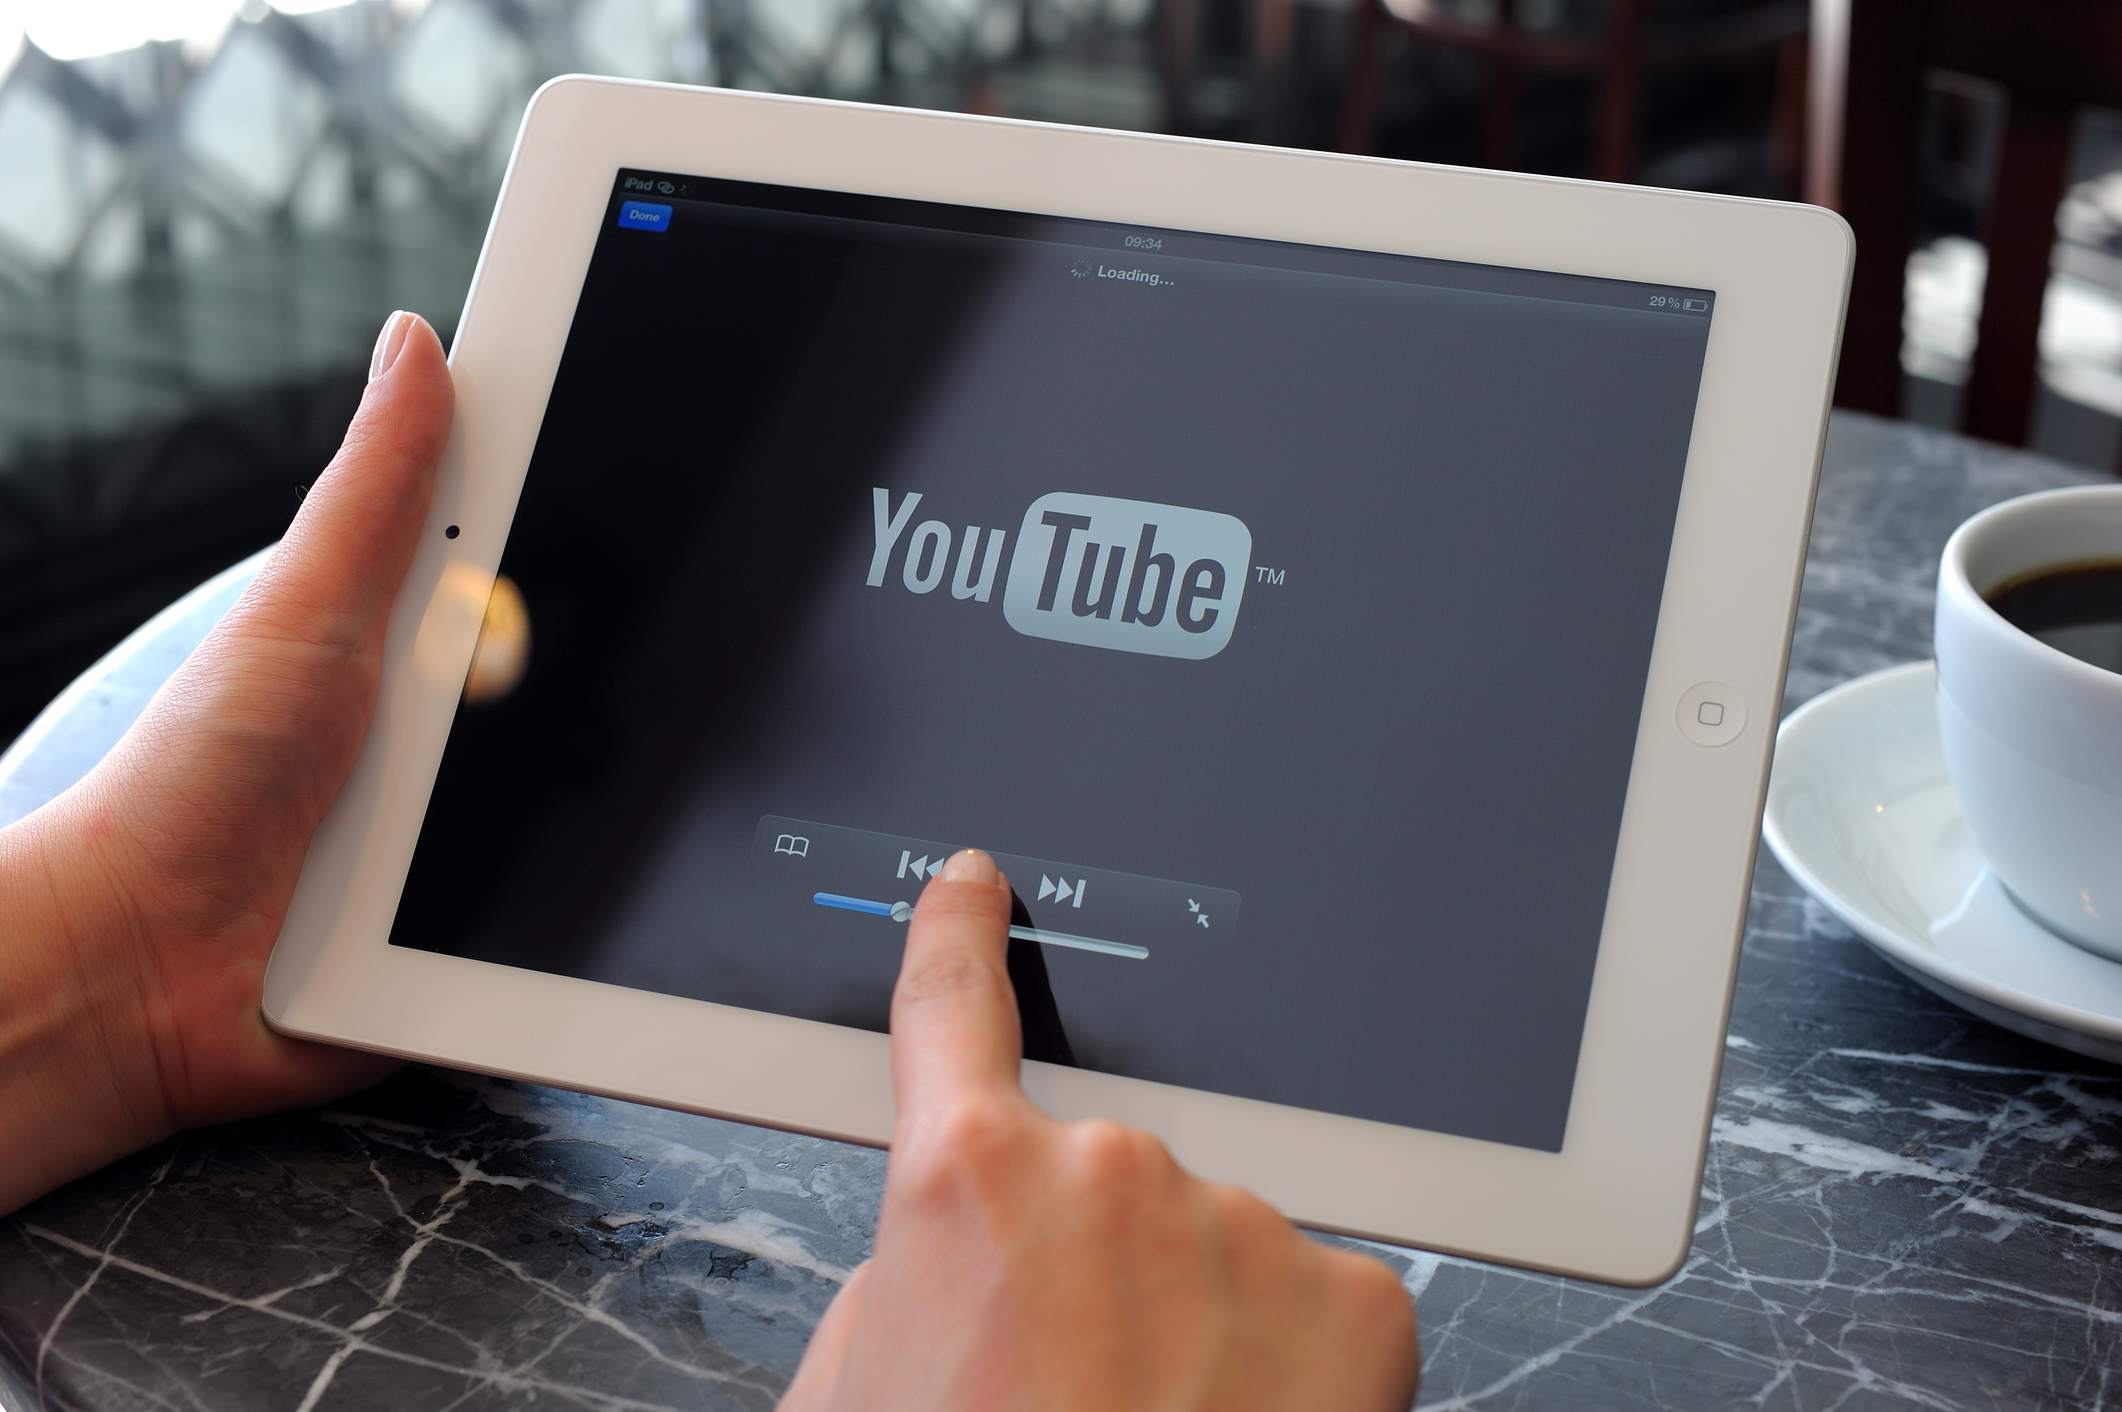 5 Reasons to Add YouTube Shorts to Your Digital Marketing Strategy